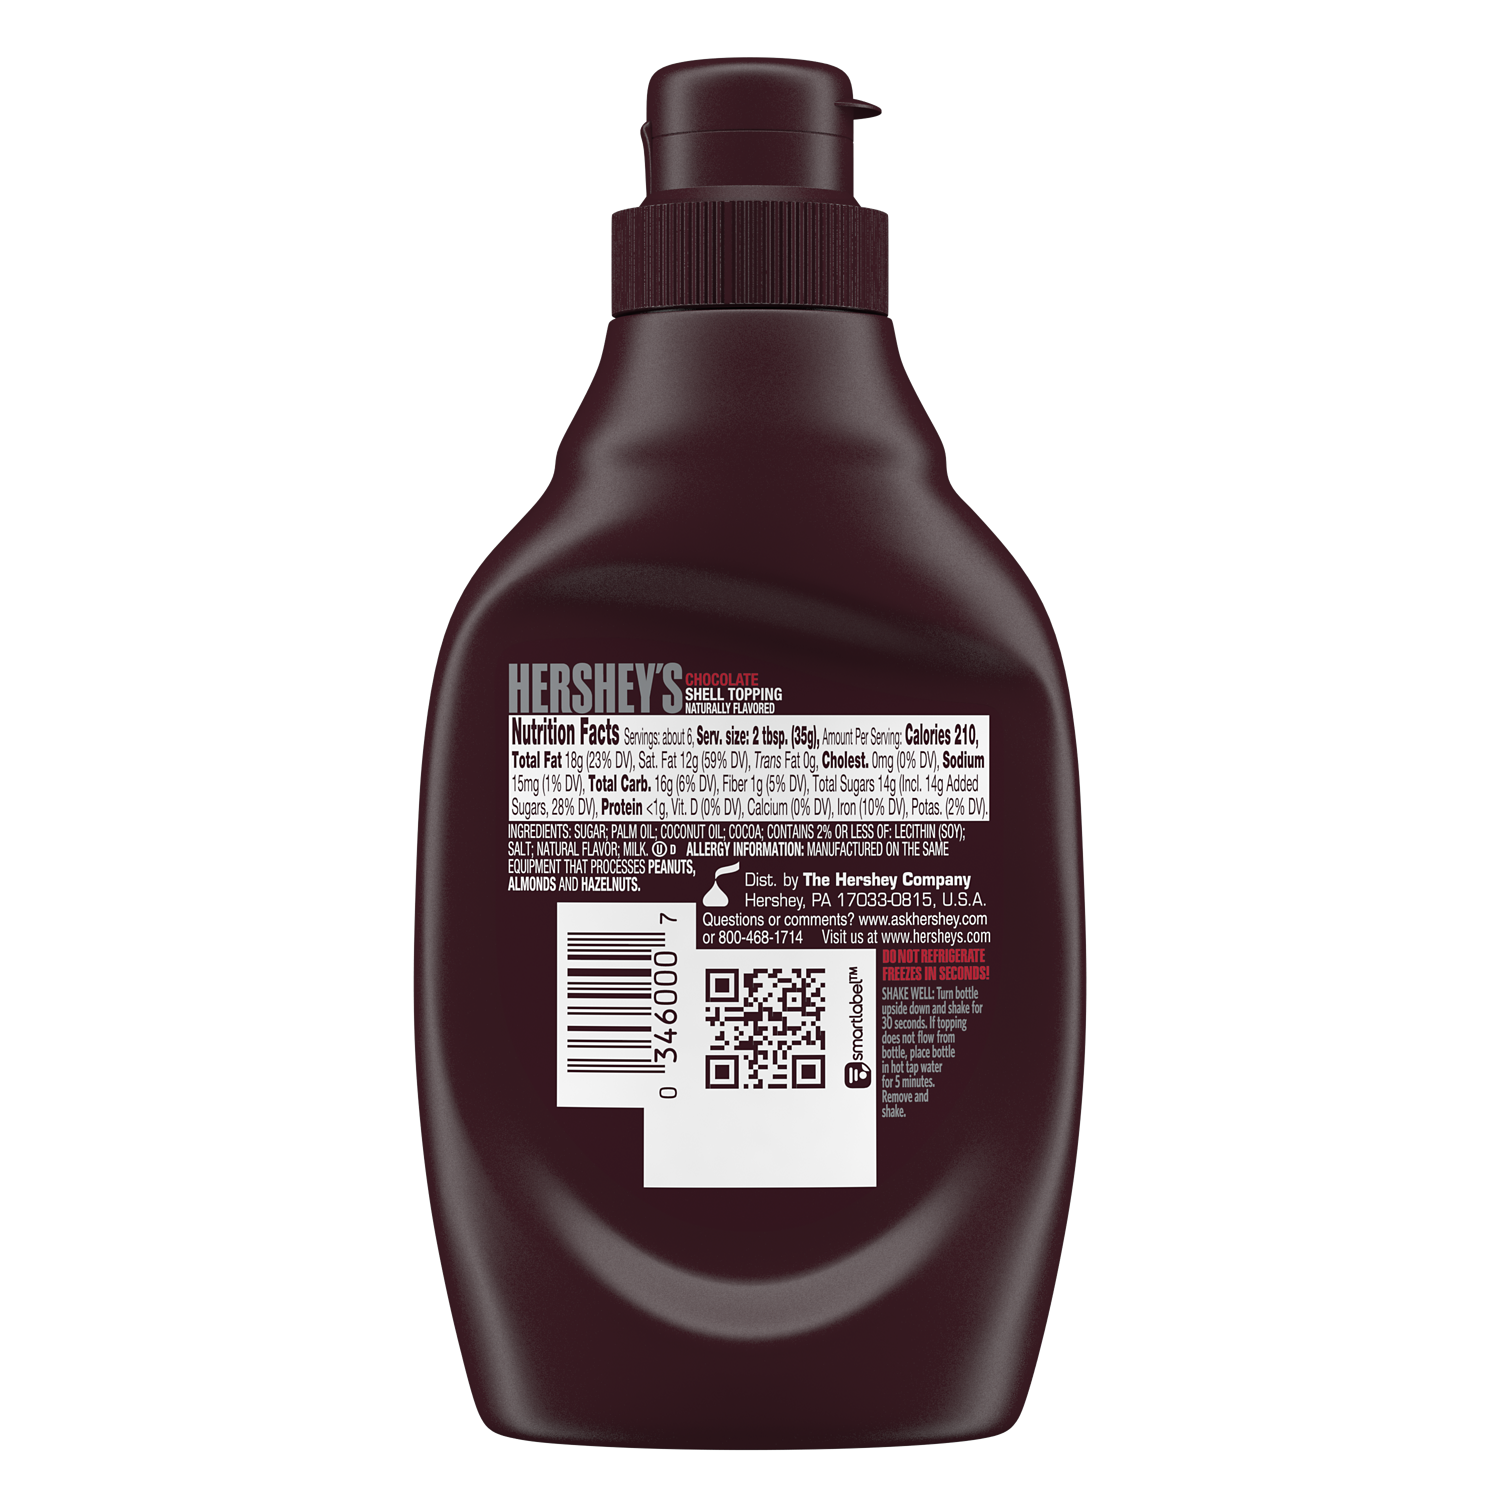 HERSHEY'S Milk Chocolate Shell Topping, 7.25 oz bottle - Back of Package